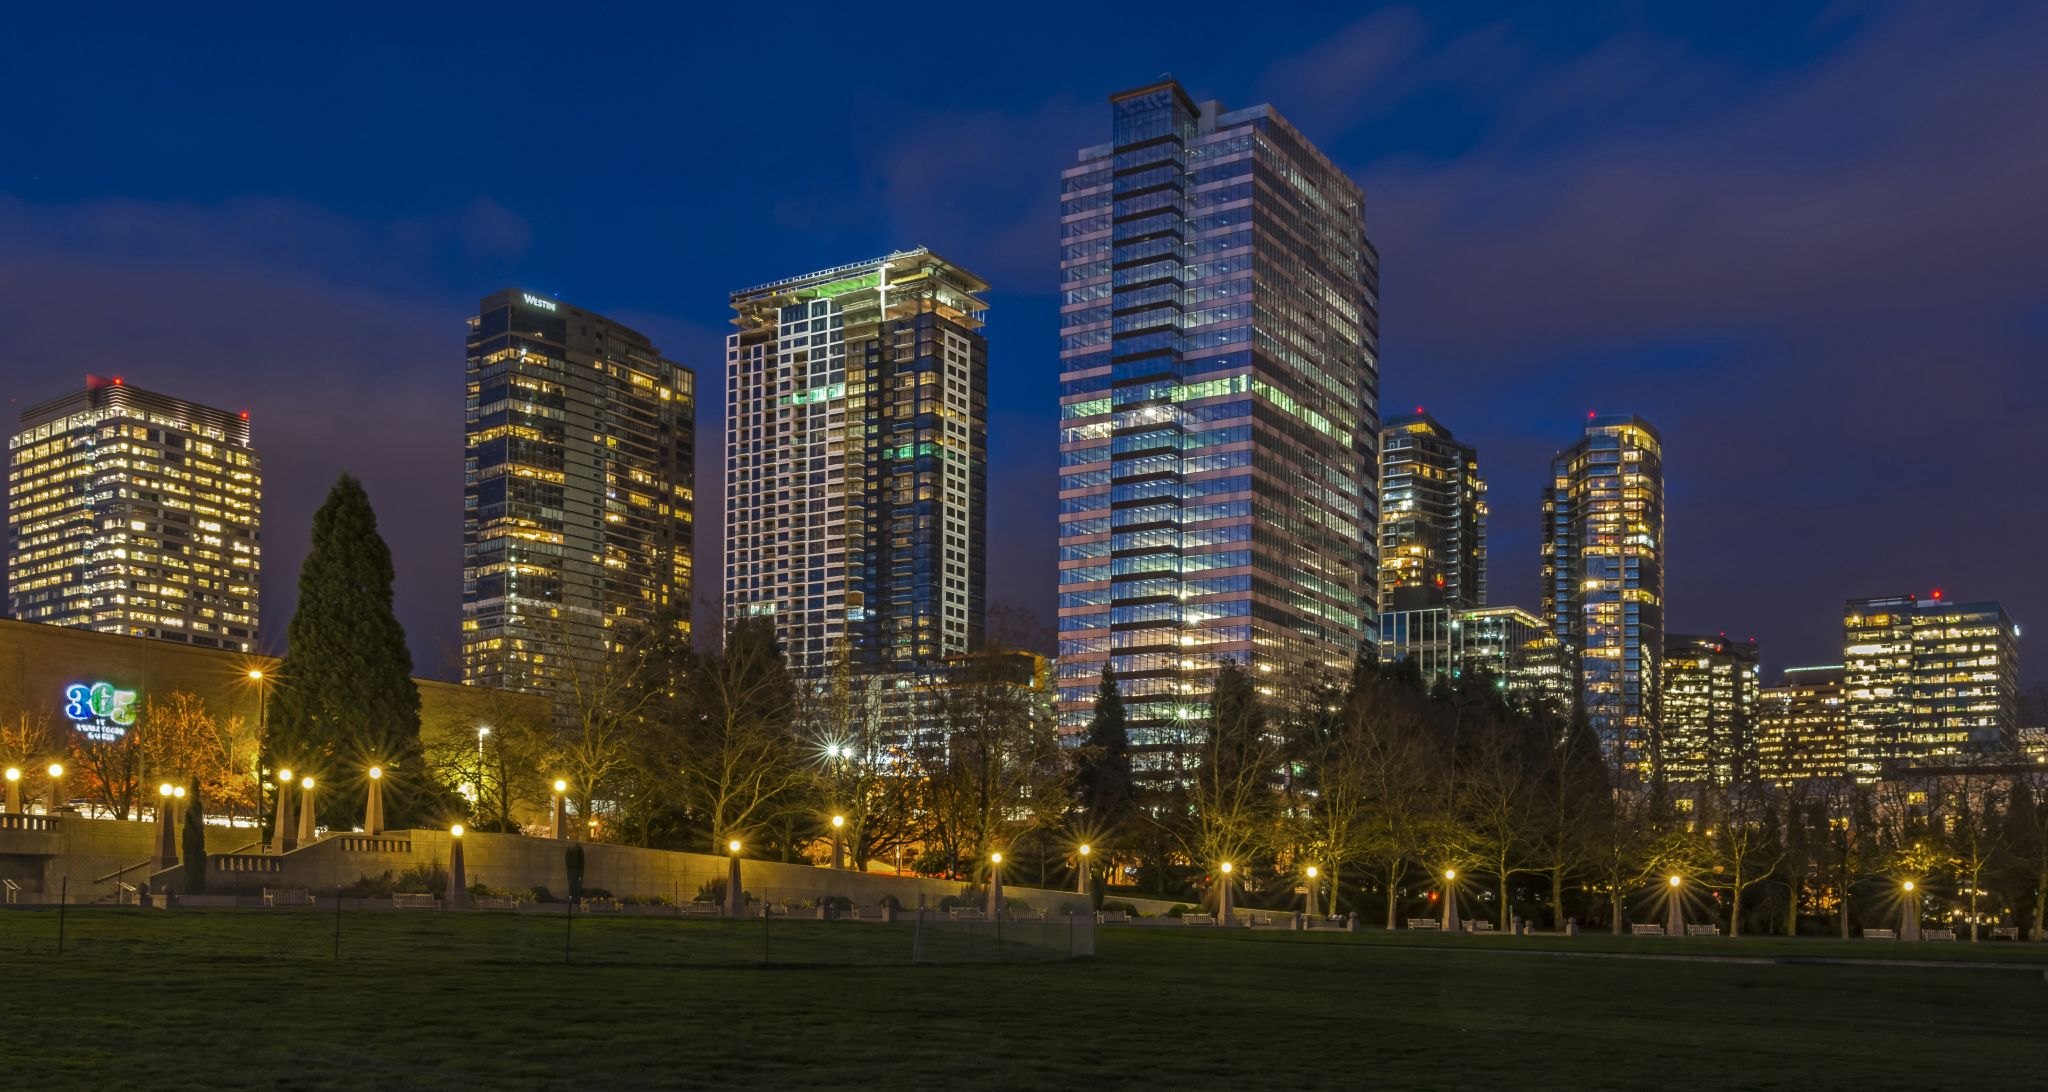 Bellevue Downtown Park, USA